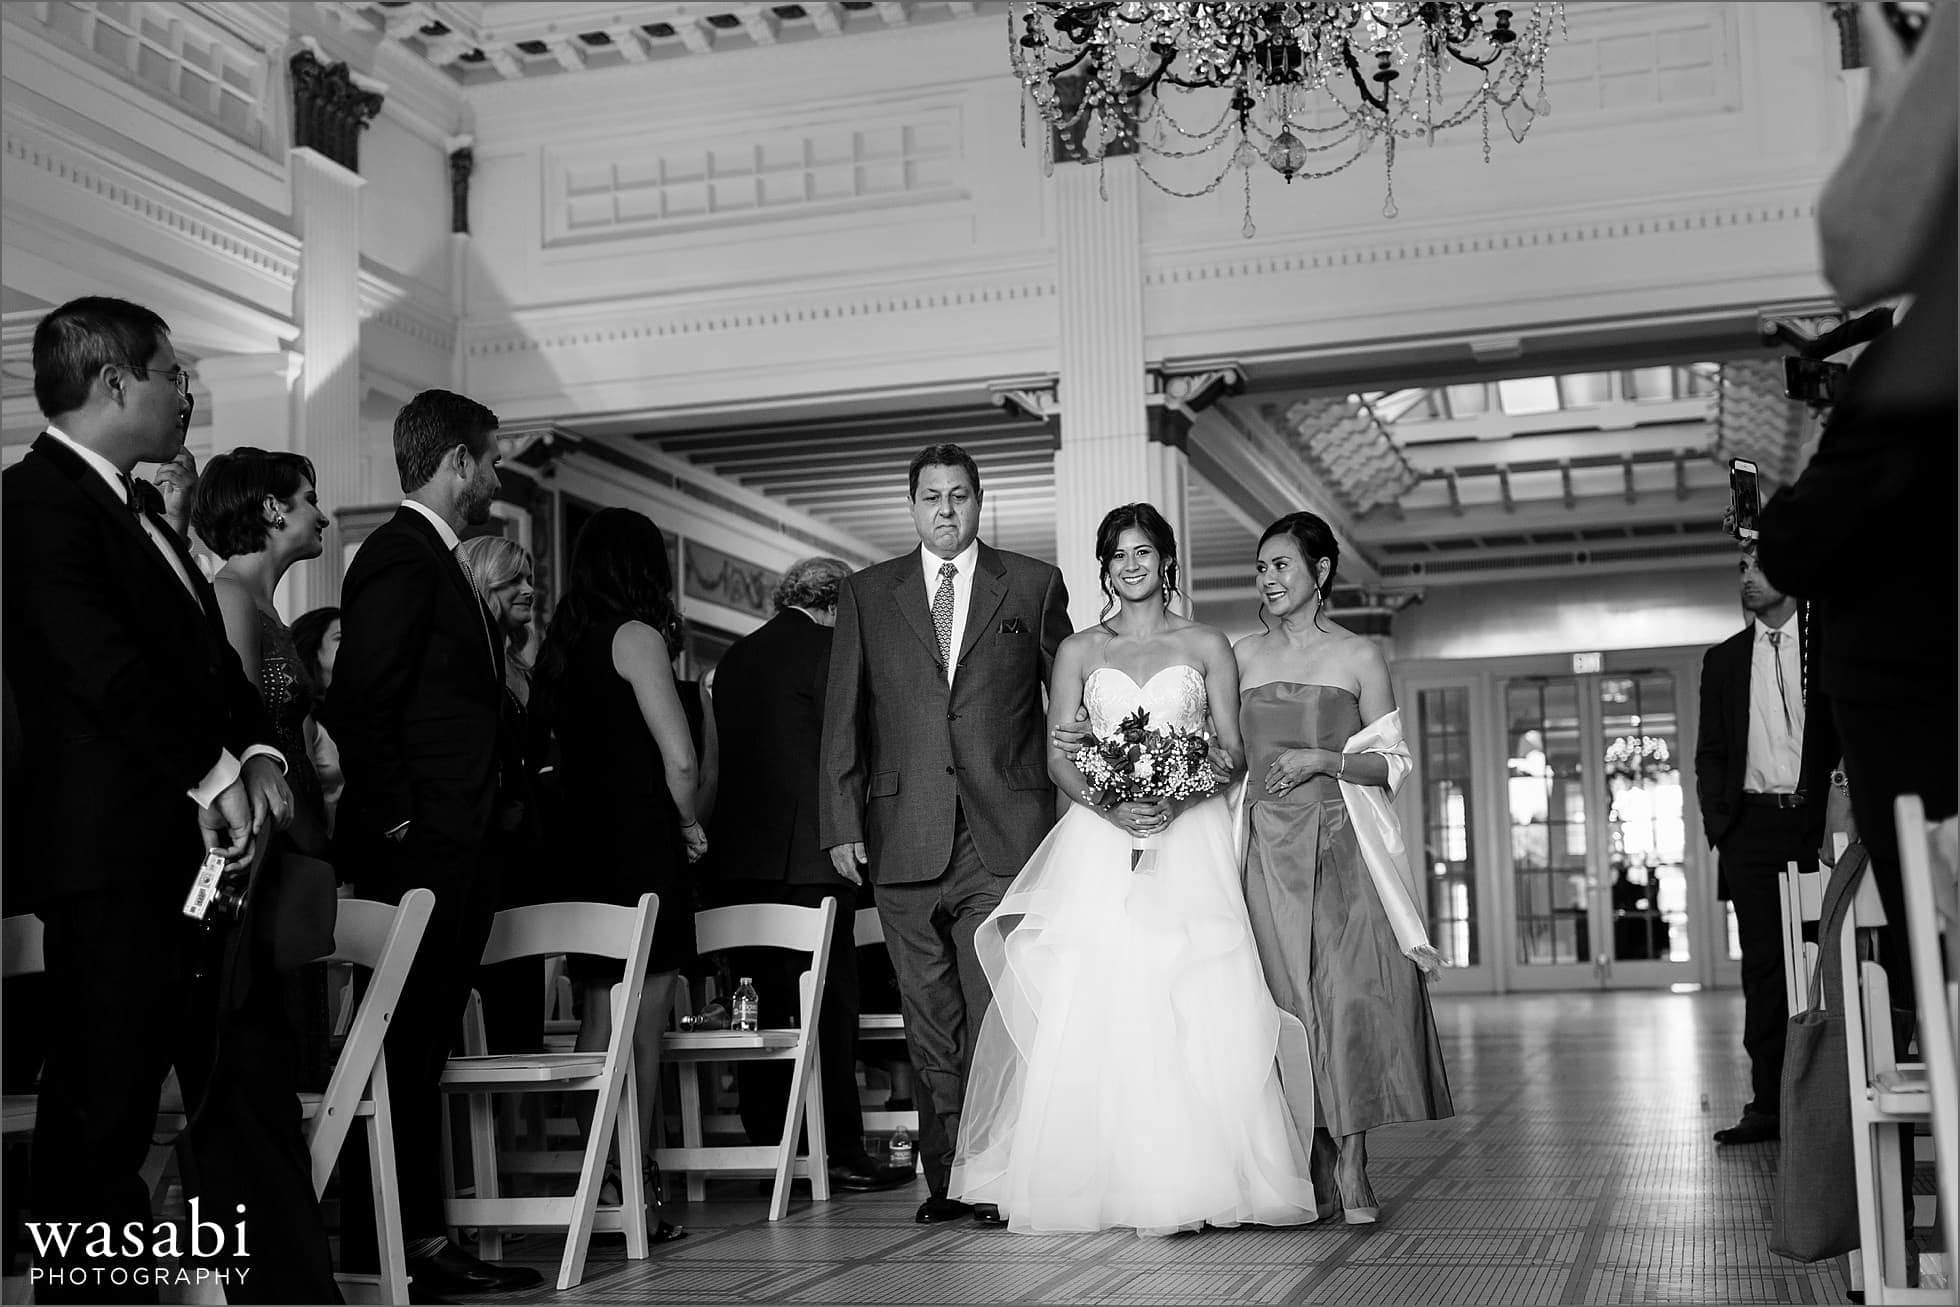 black and white bride walking down aisle with parents during wedding ceremony at South Shore Cultural Center